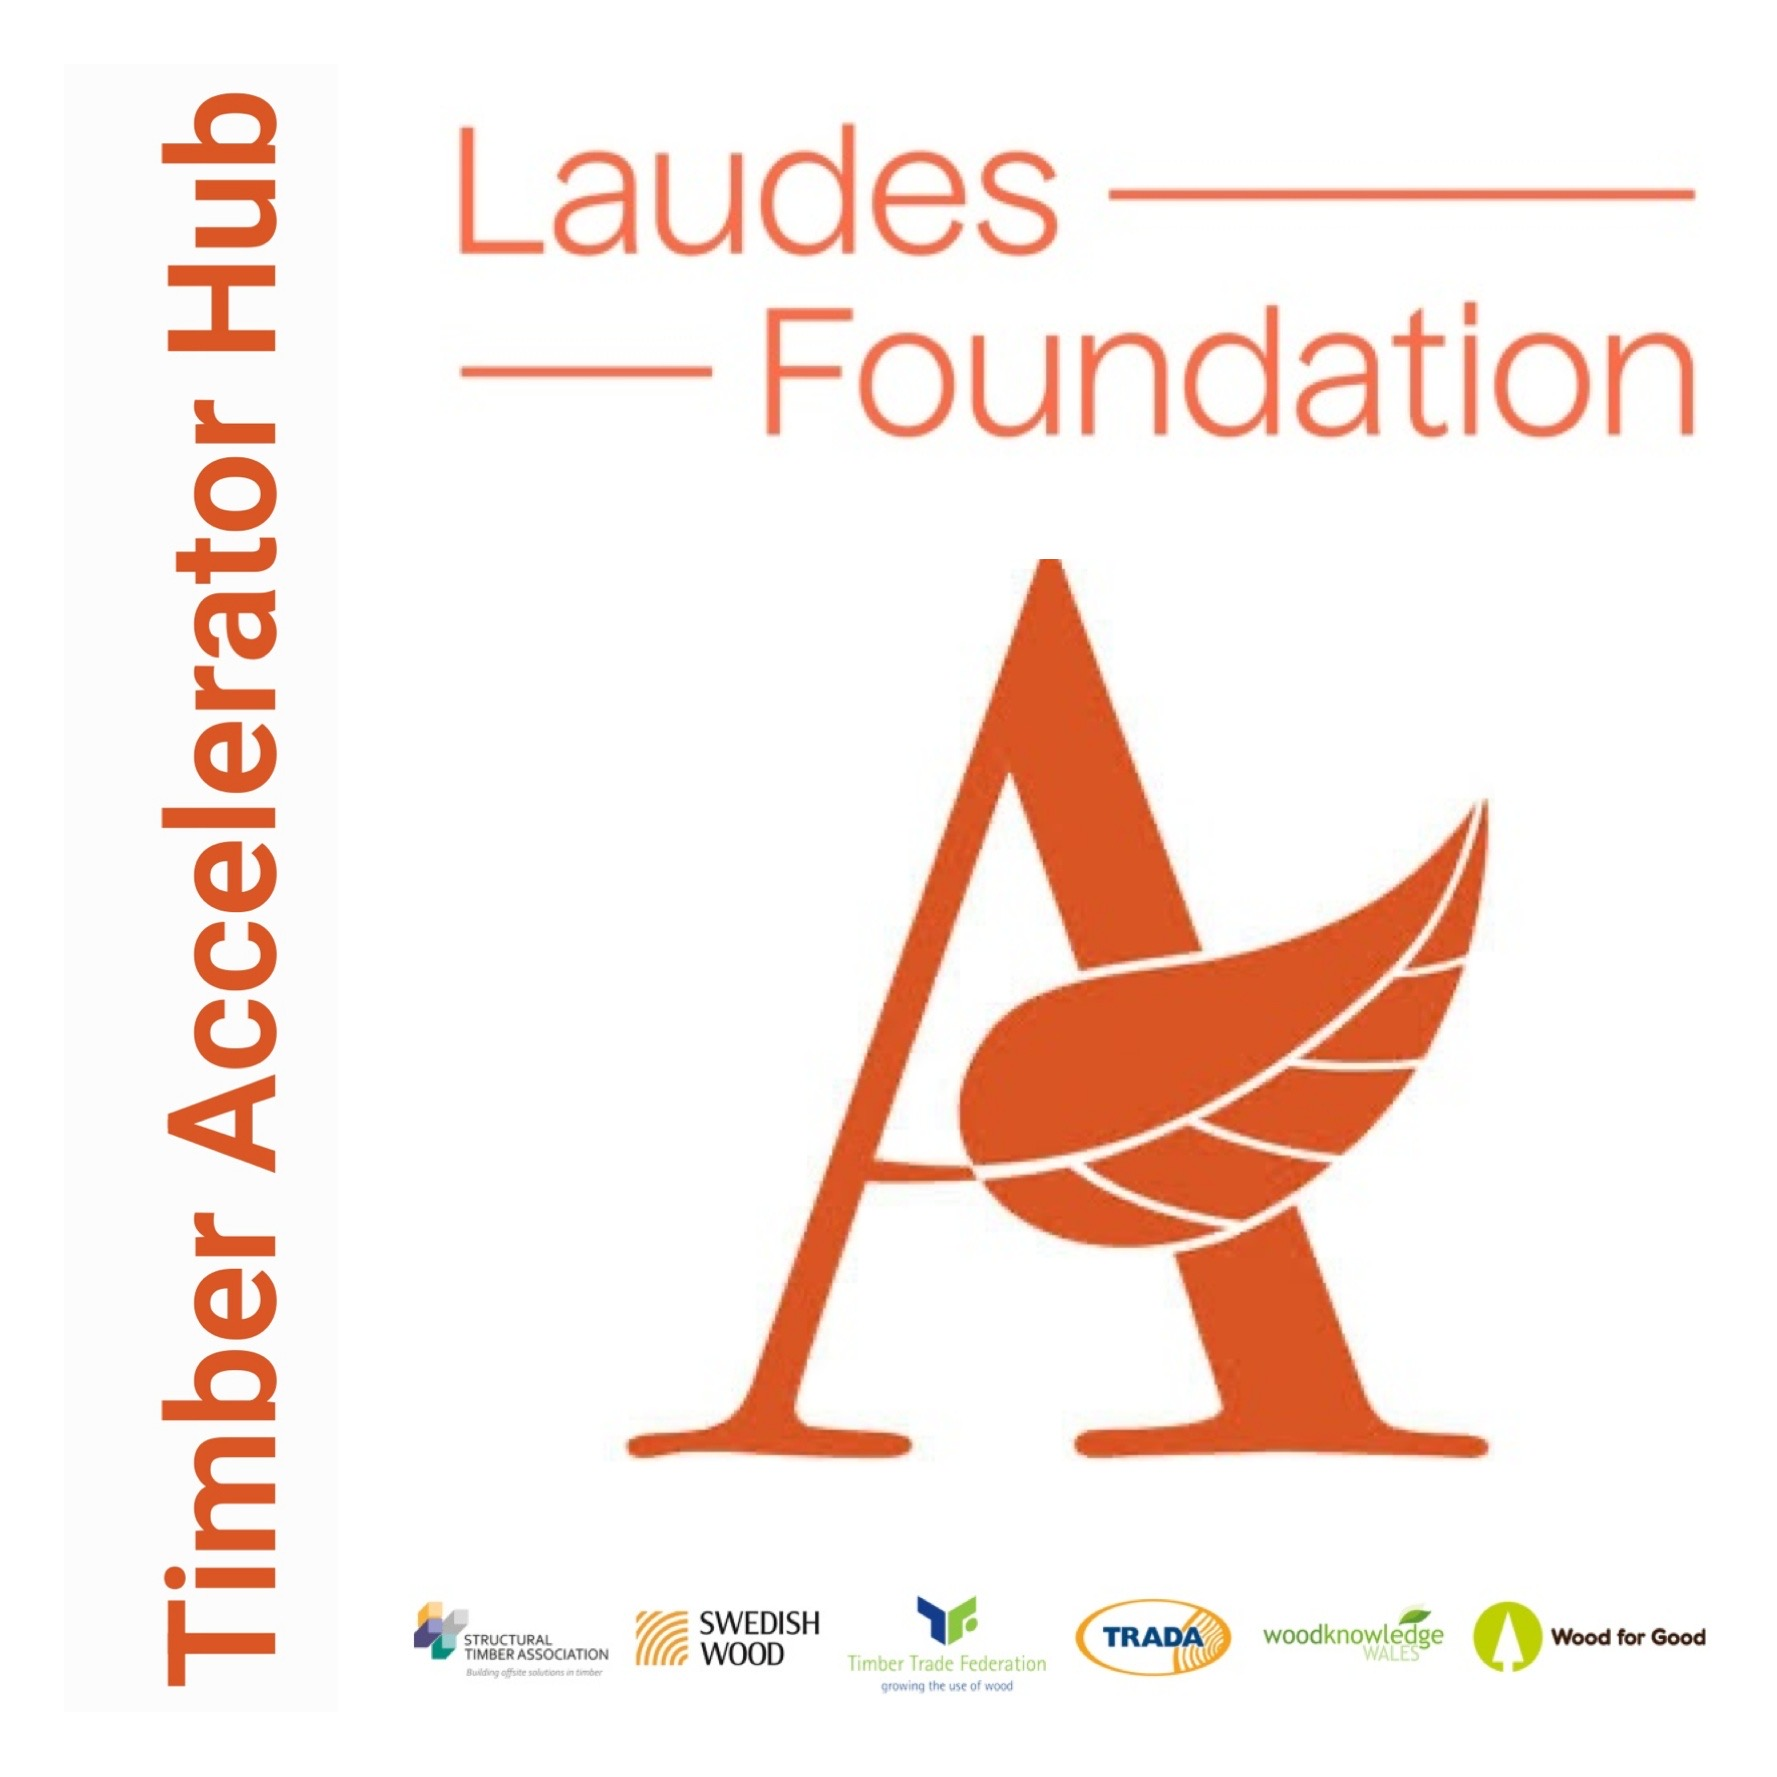 Funding received from Laudes Foundation to develop Timber Accelerator Hub